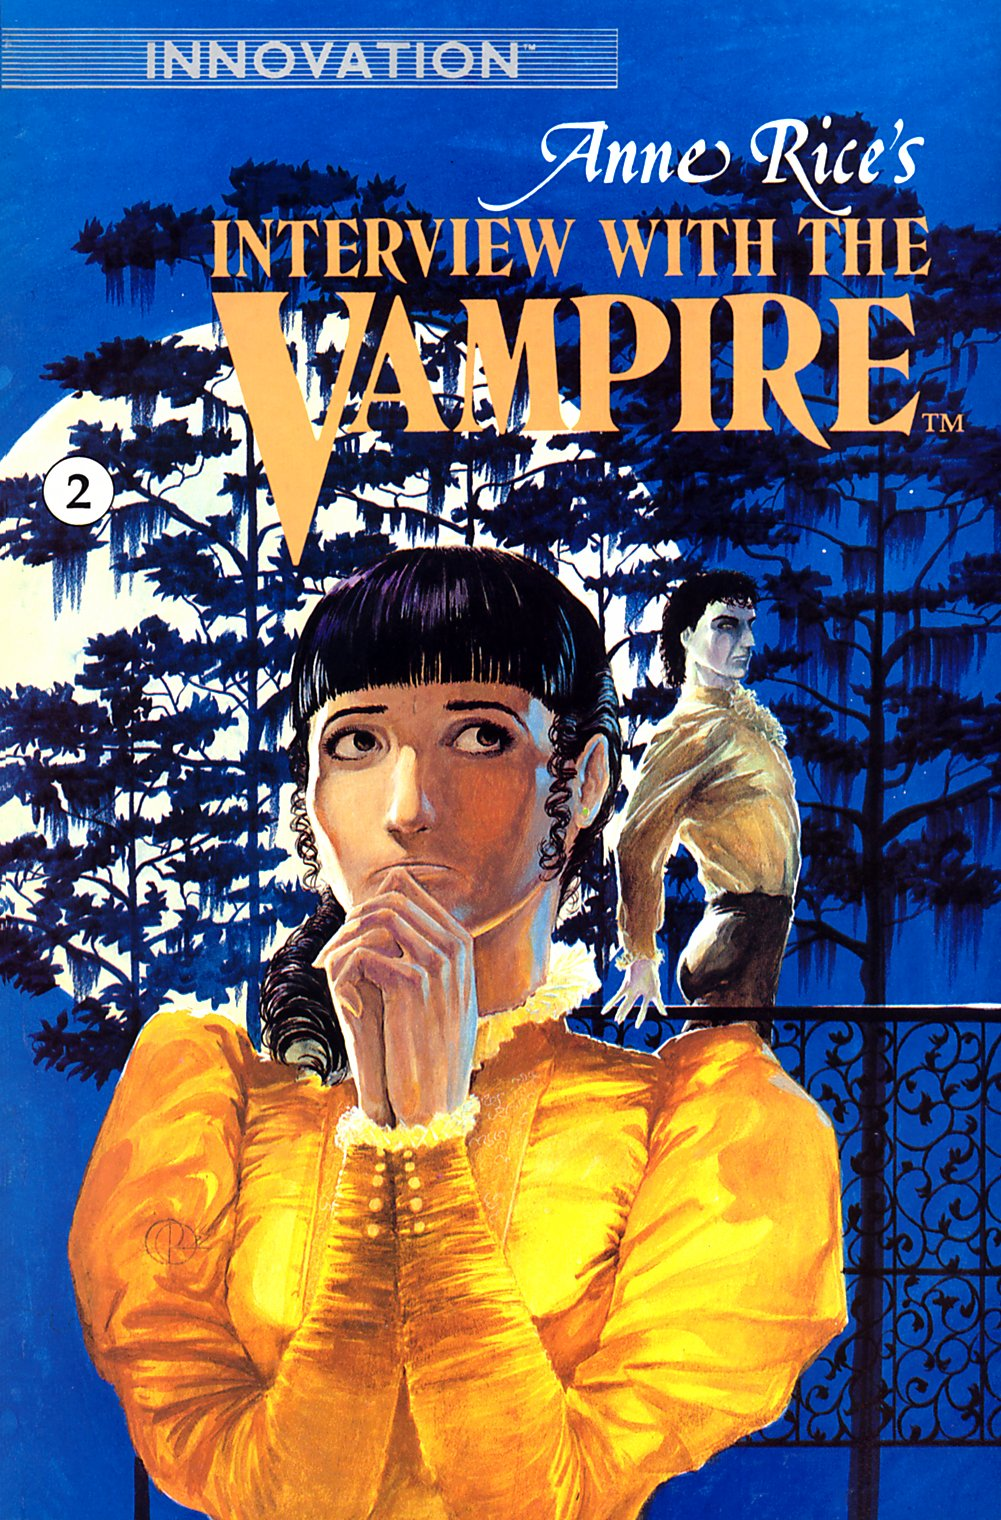 Read online Anne Rice's Interview with the Vampire comic -  Issue #2 - 1